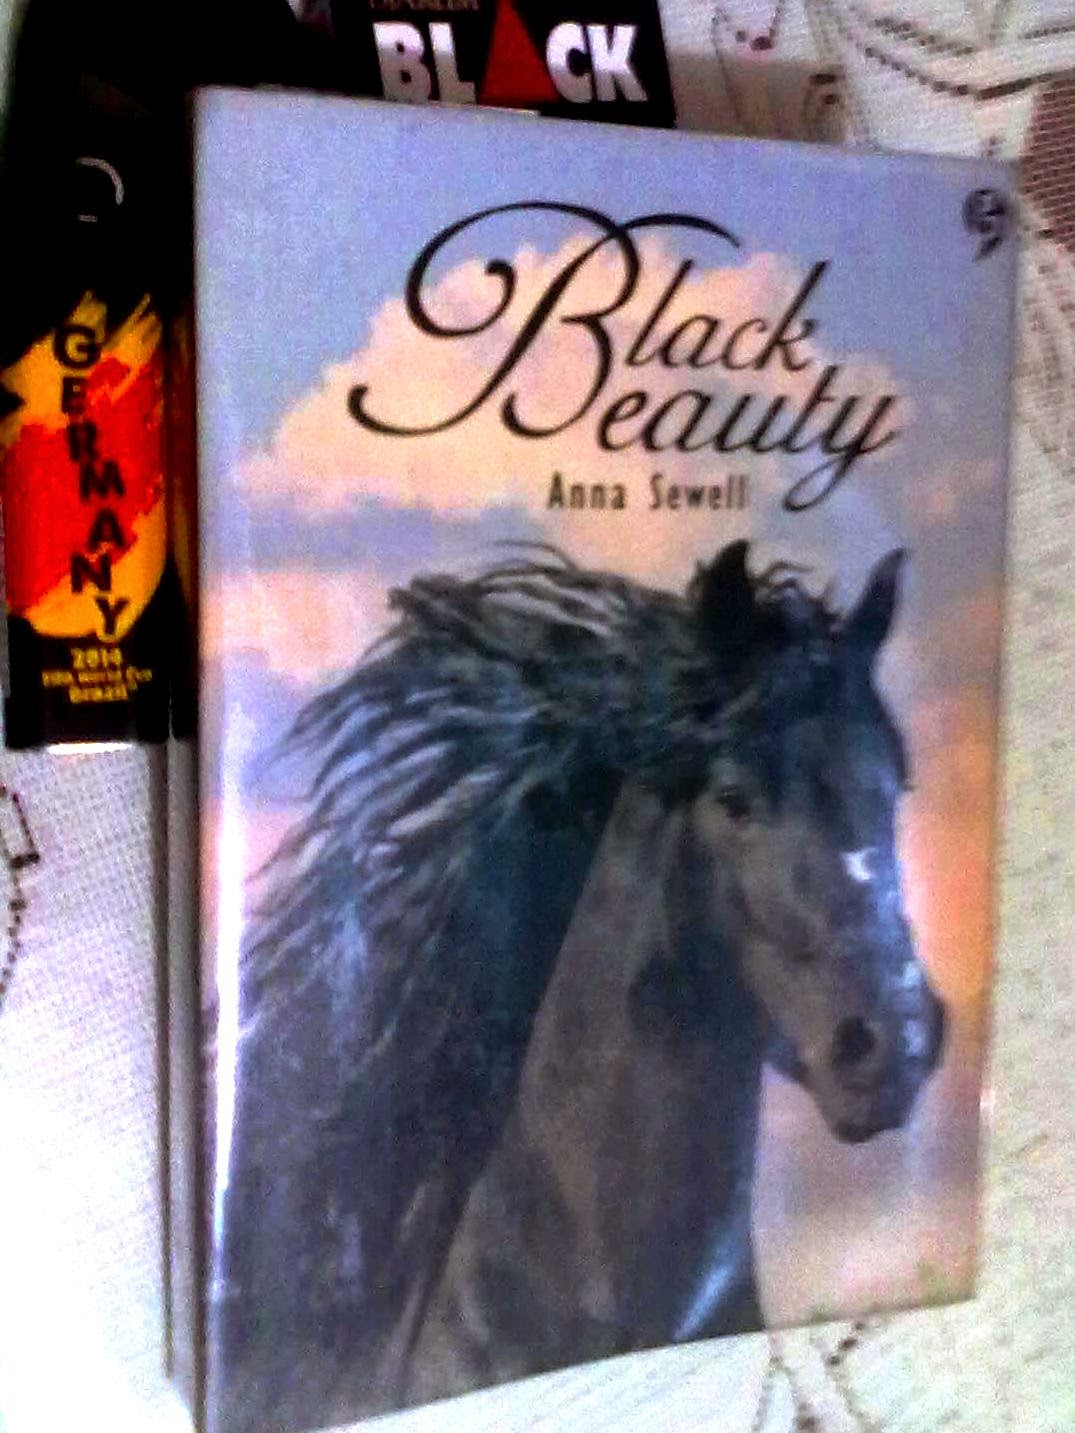 Novel Black Beauty Anna Sewell